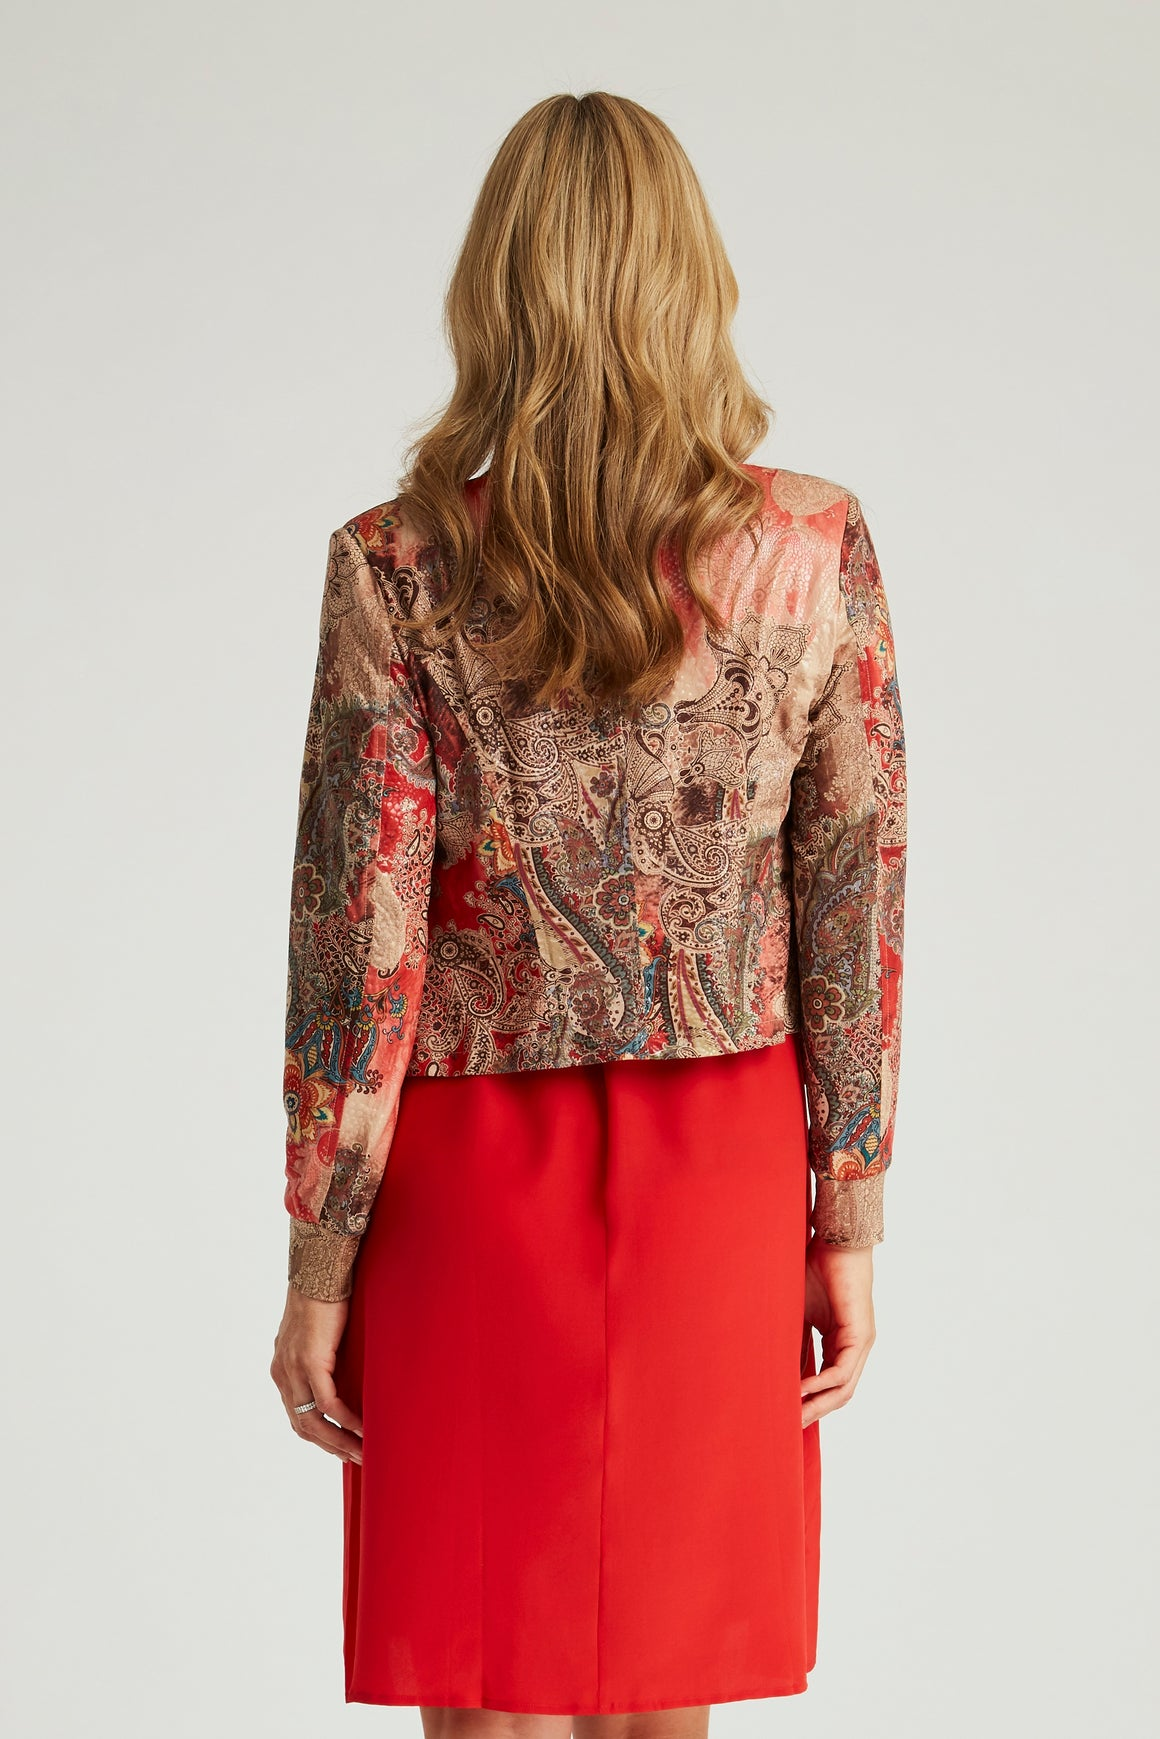 The Little Diva Jacket - Italian Paisley